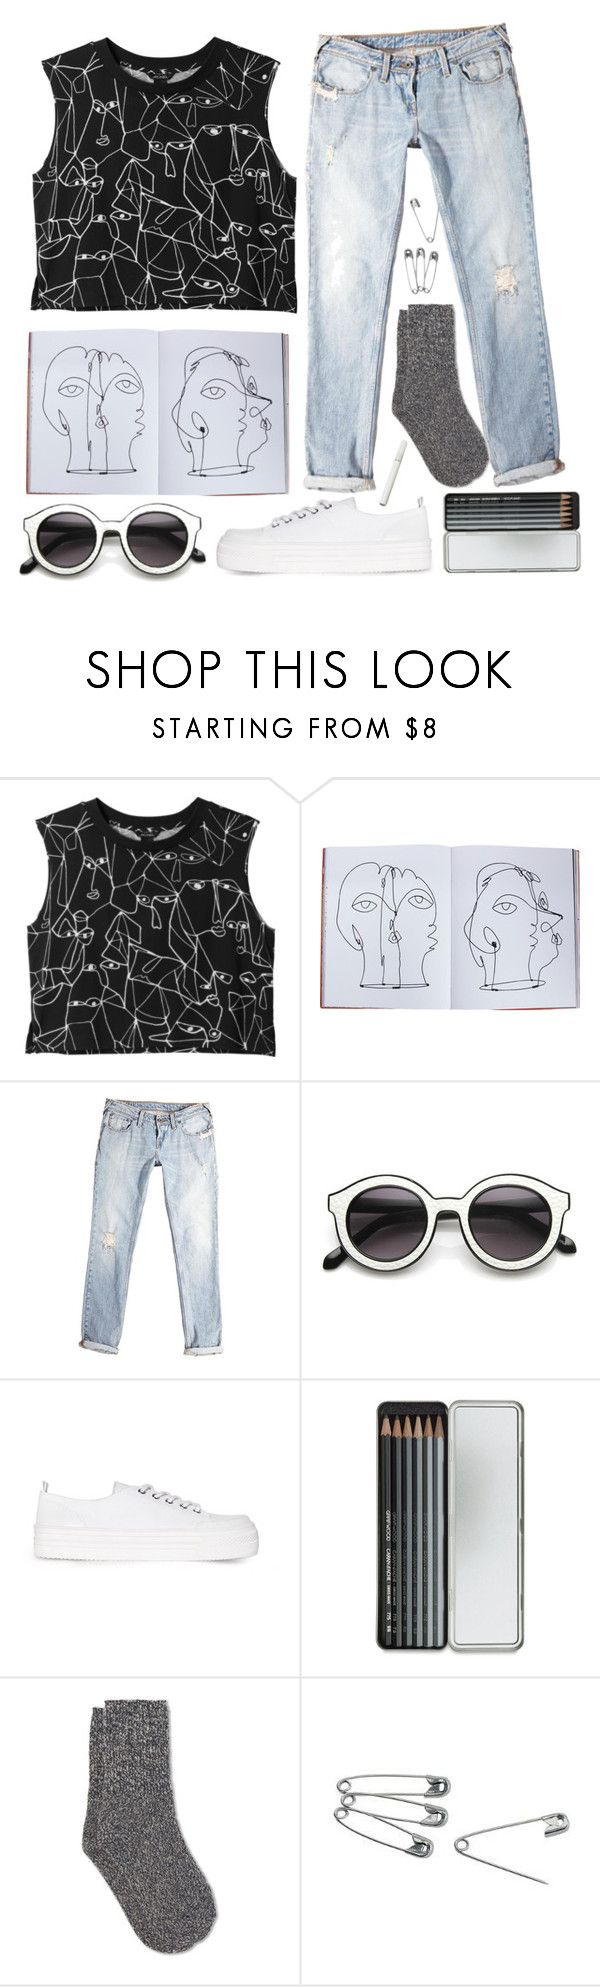 """""""Pablo"""" by sastronomical ❤ liked on Polyvore featuring Monki, Assouline Publishing, Jack Wills, INDIE HAIR, MANGO, Caran d'Ache, White Stuff, white, black and jeans"""